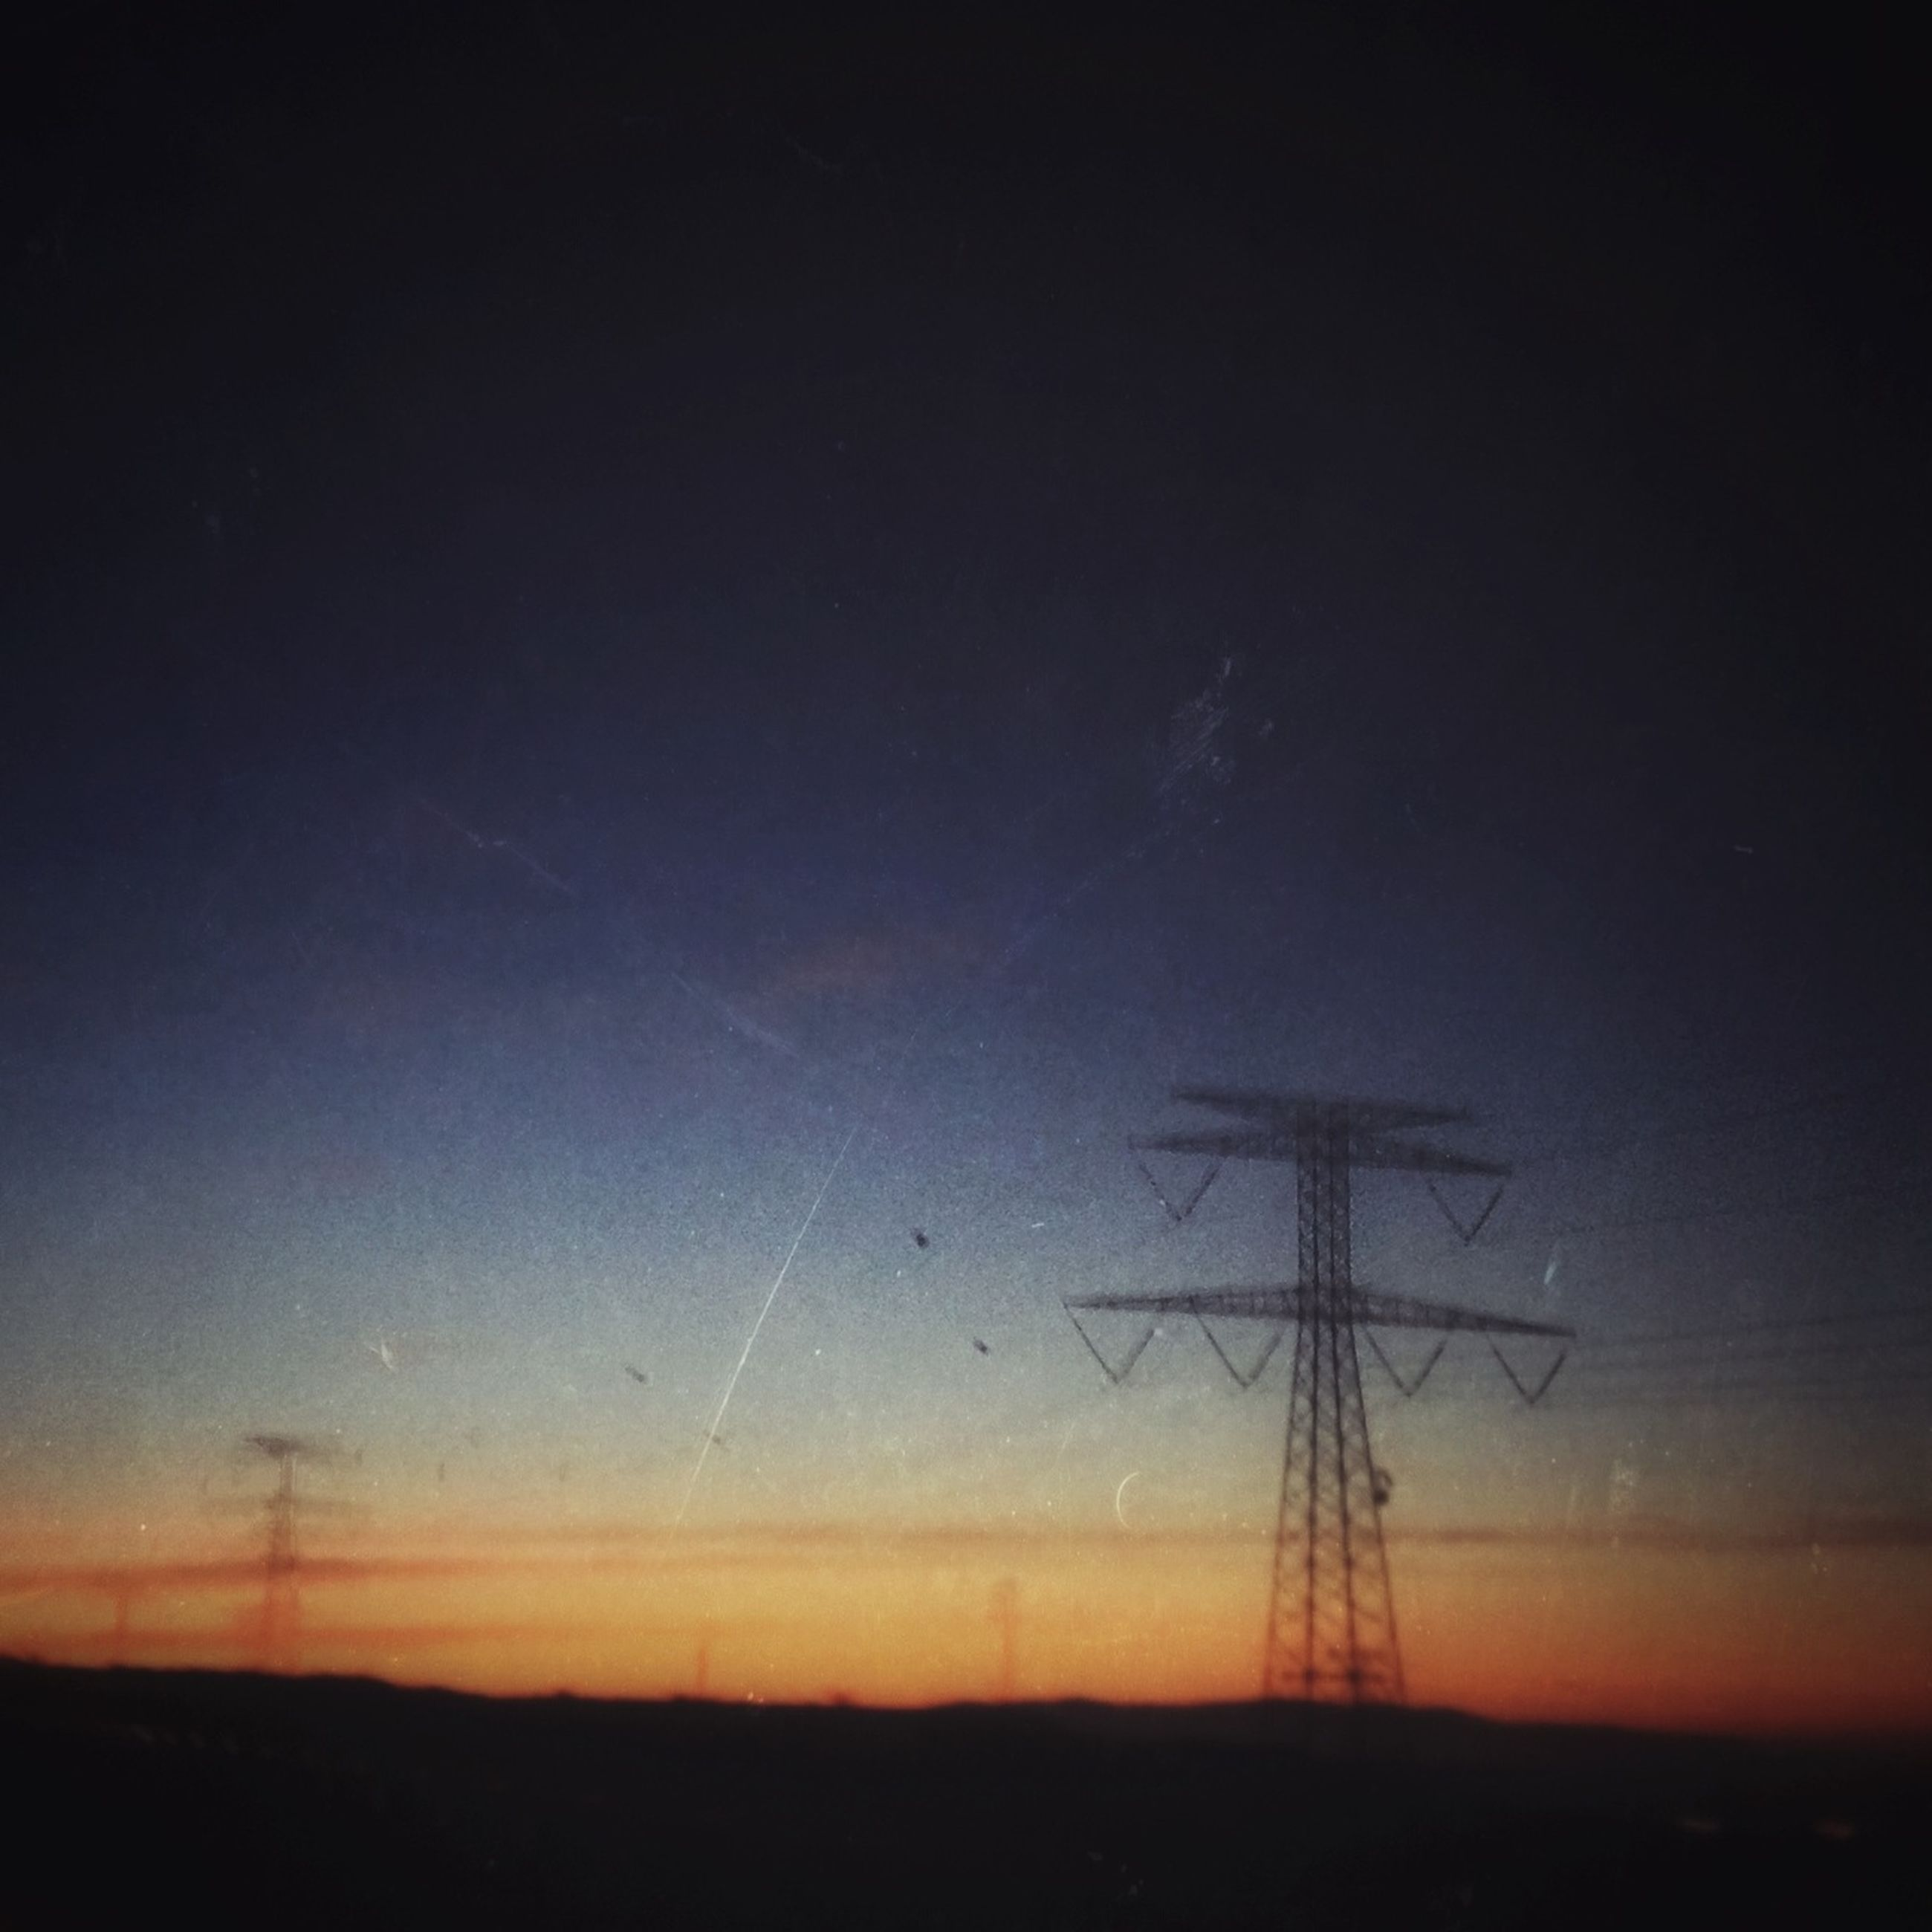 silhouette, fuel and power generation, electricity pylon, landscape, electricity, tranquility, technology, tranquil scene, power line, power supply, sunset, sky, scenics, field, nature, beauty in nature, dusk, wind turbine, wind power, alternative energy